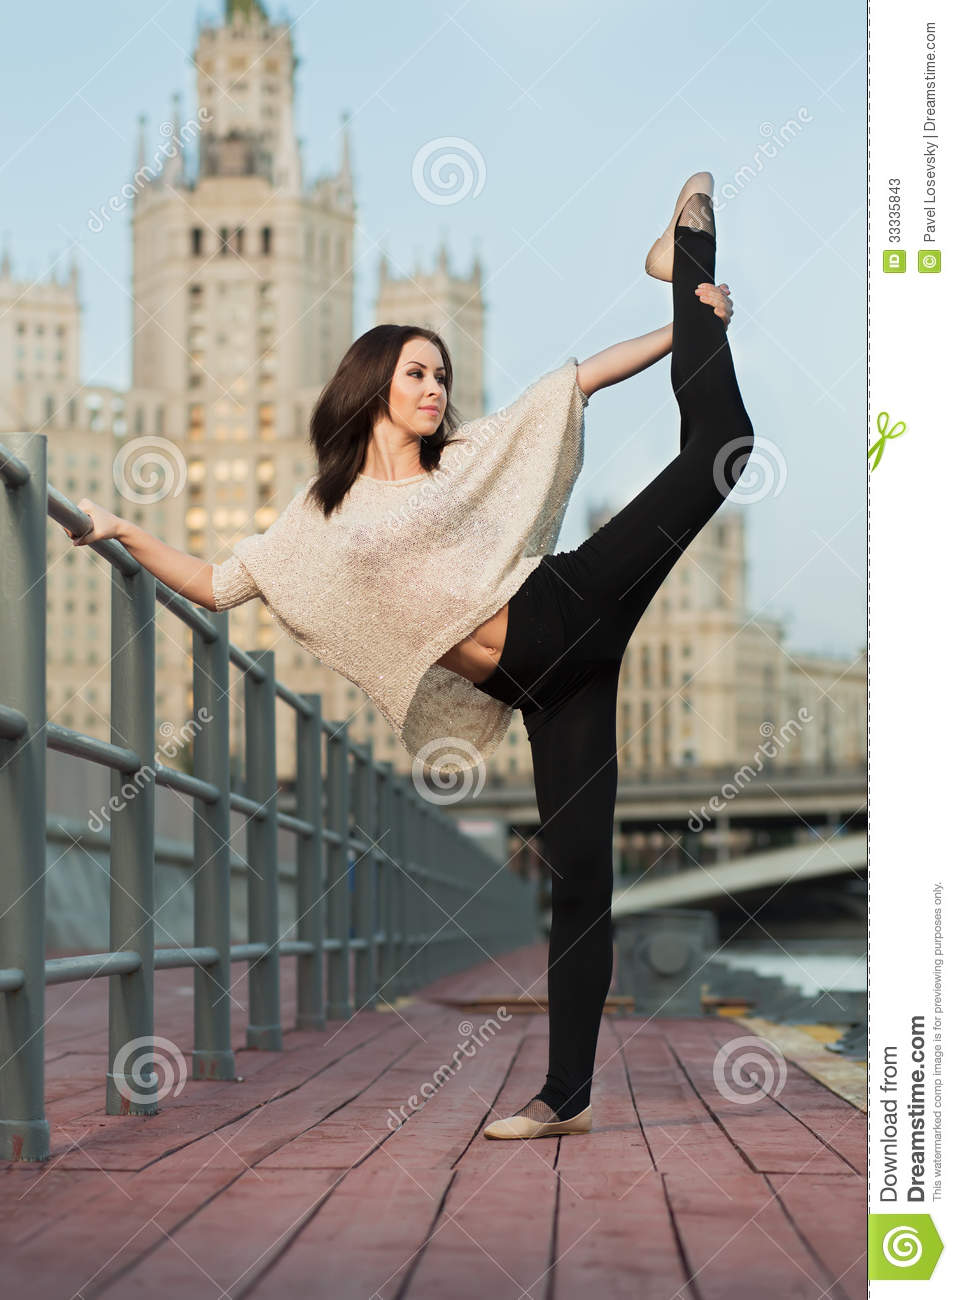 young woman makes a stretching leaning on railing stock image